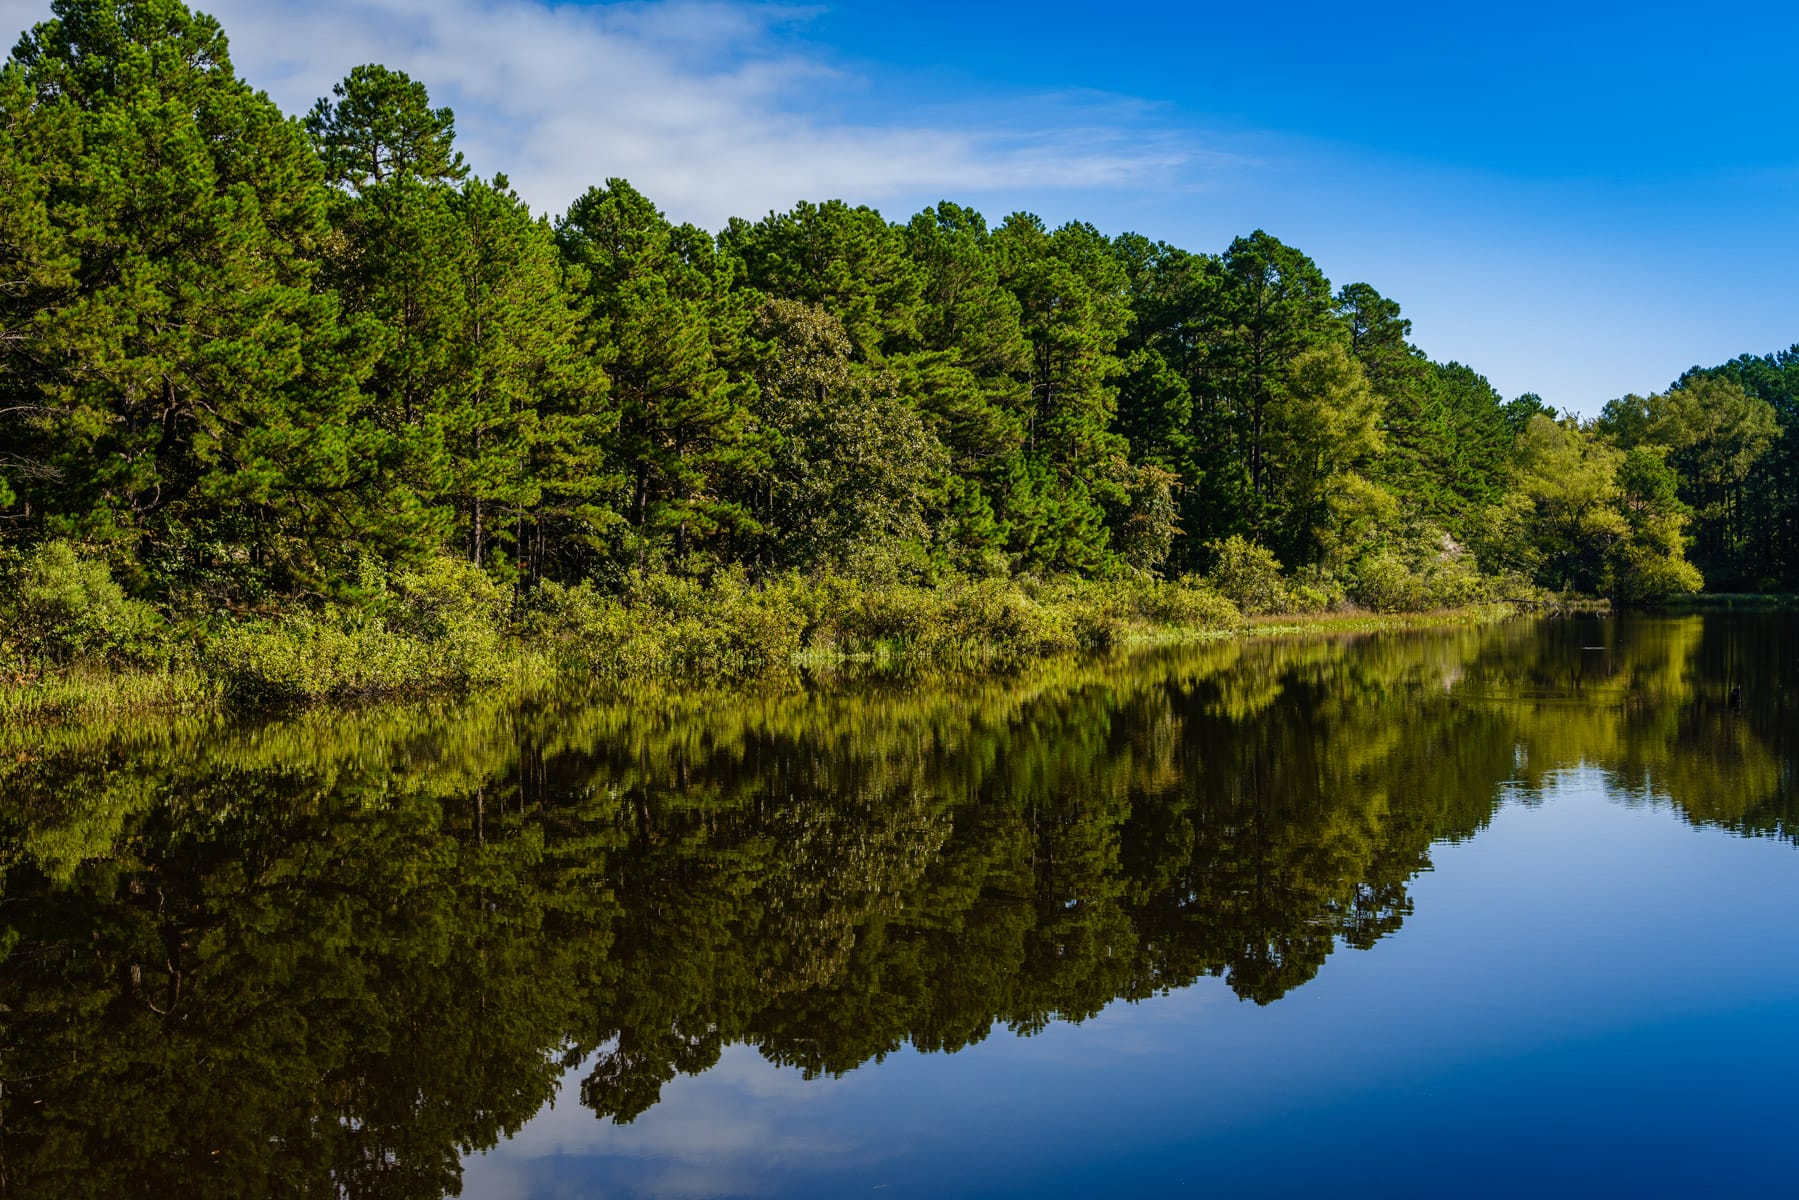 Trees reflected on a still pond at Oklahoma's McGee Creek State Park.